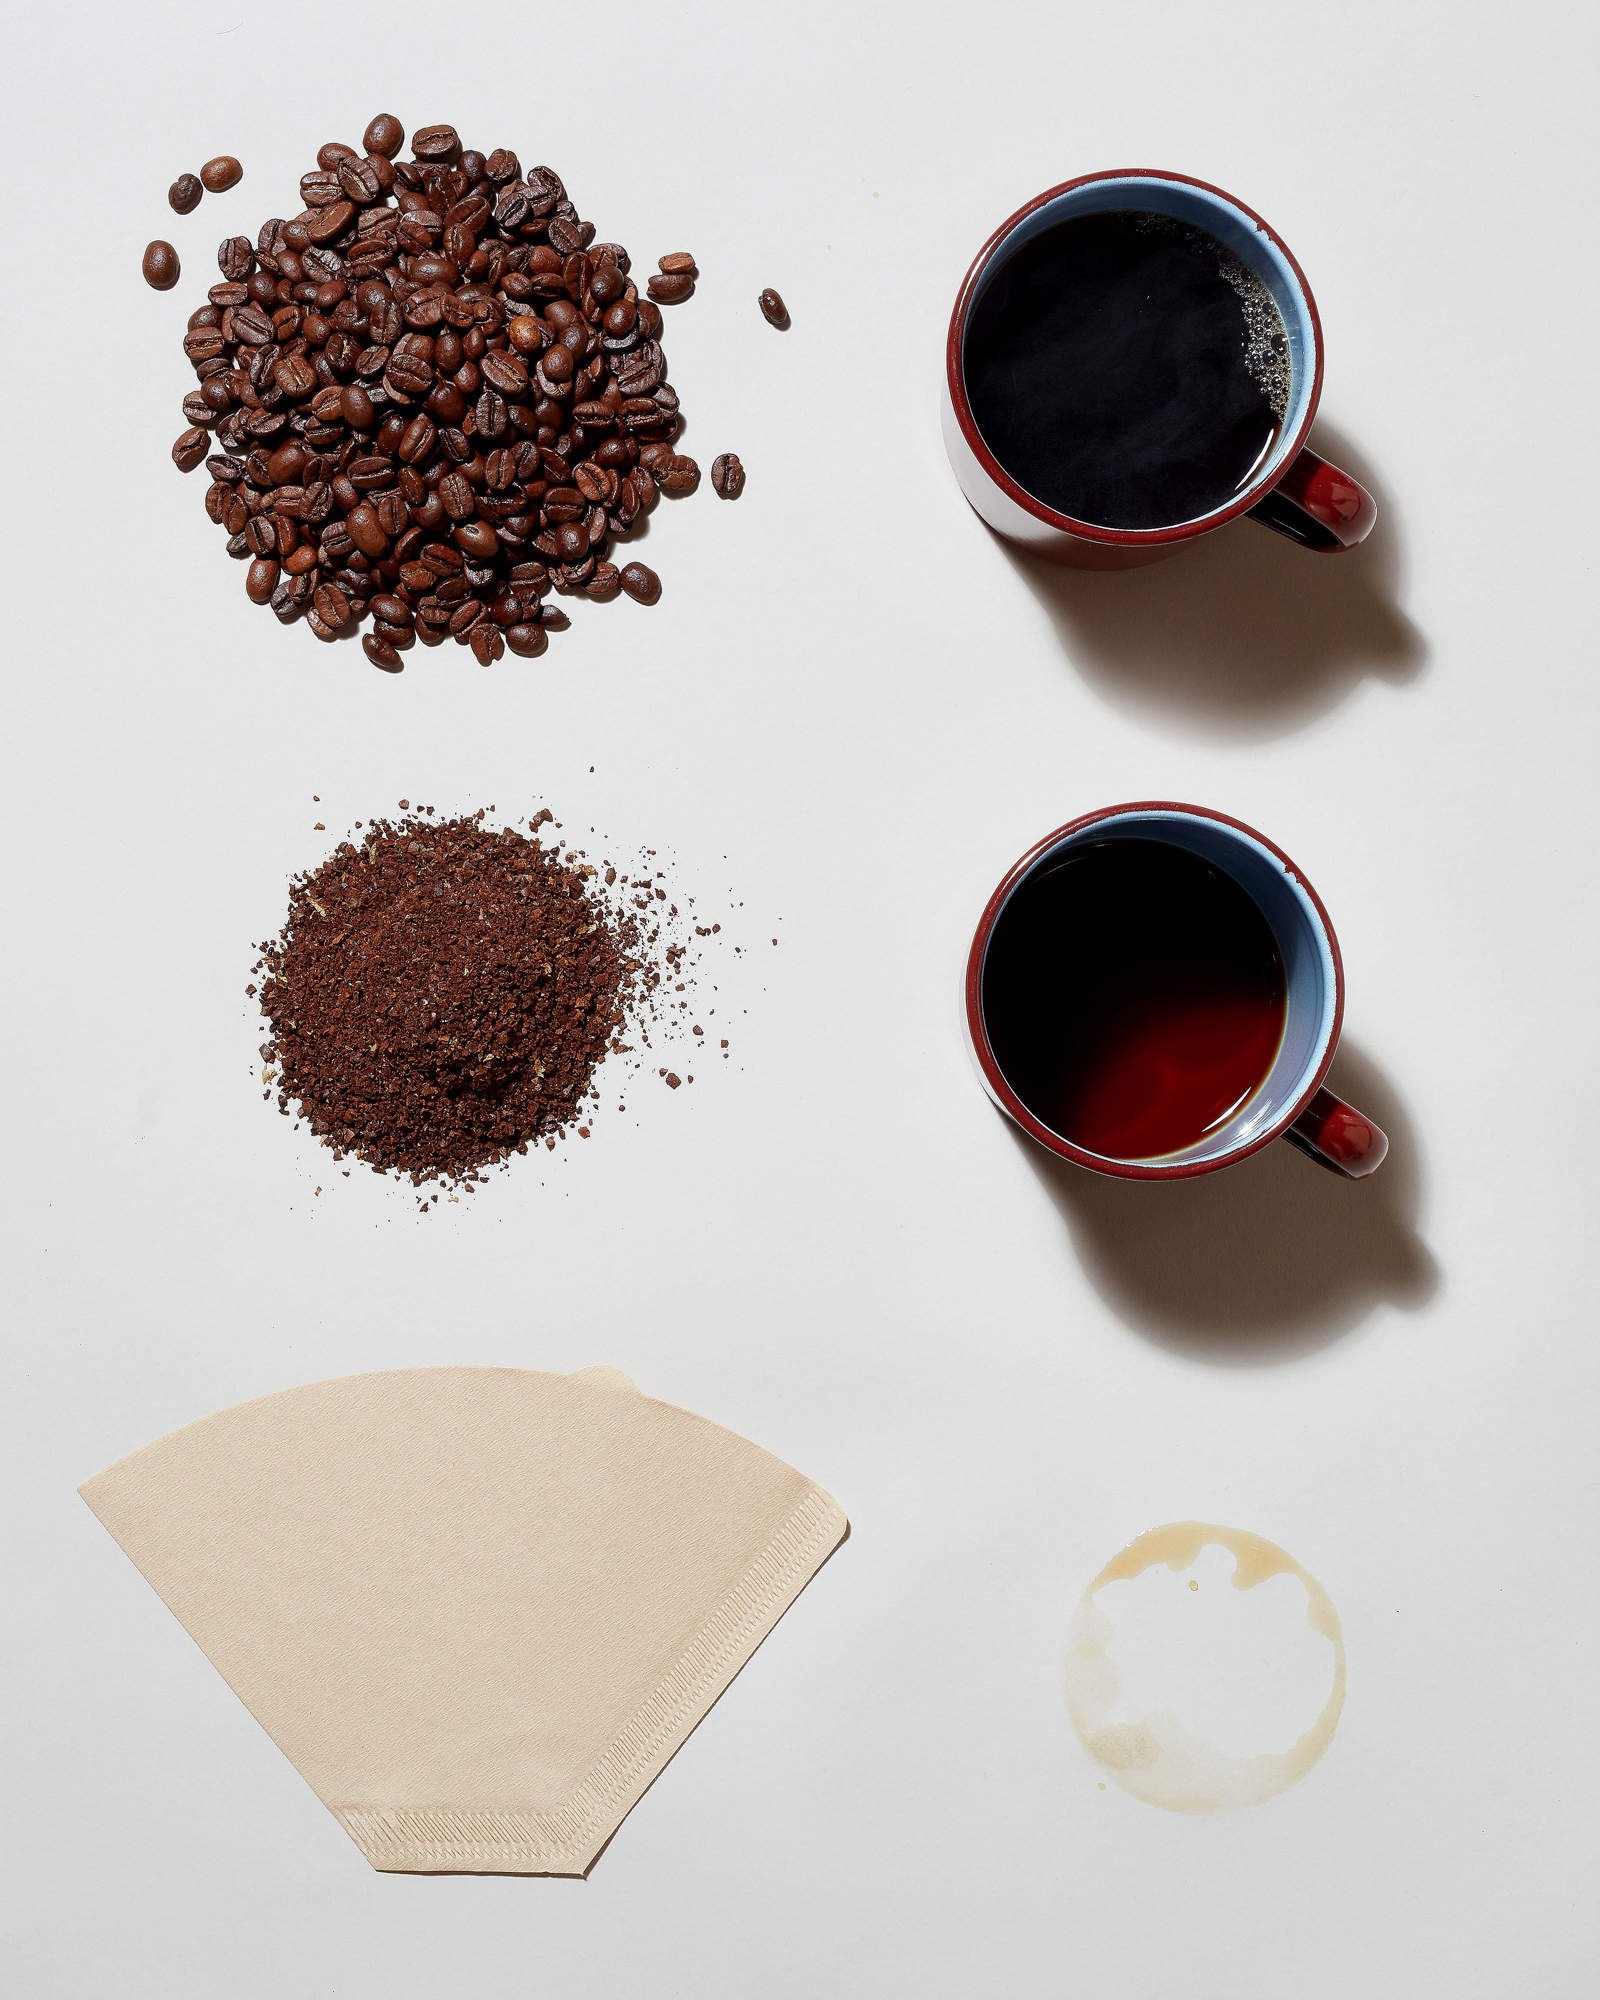 Deconstructed pour over coffee photography